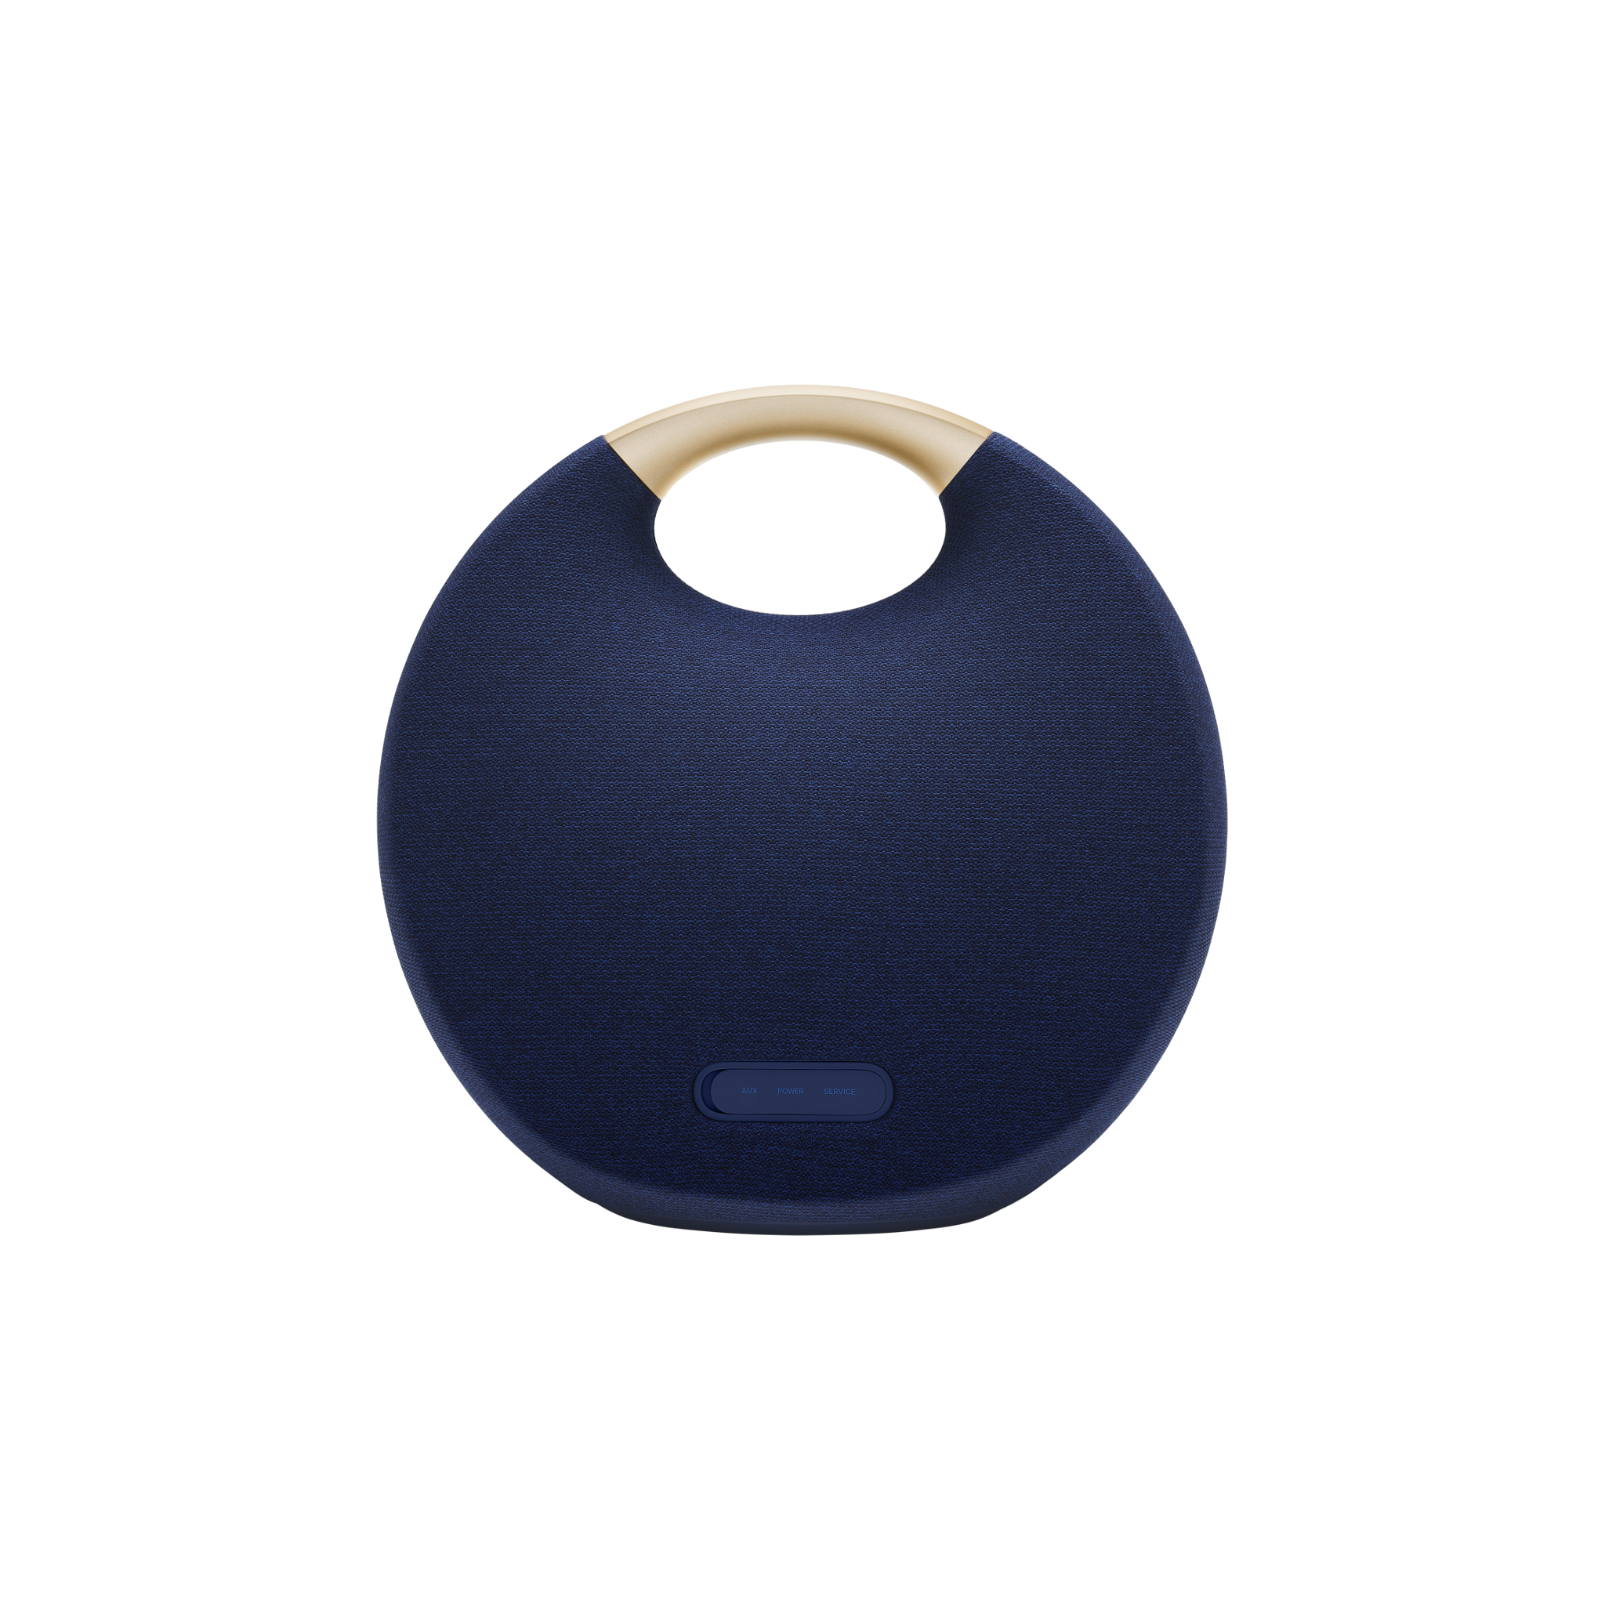 Onyx Studio 6 - Blue - Portable Bluetooth speaker - Back